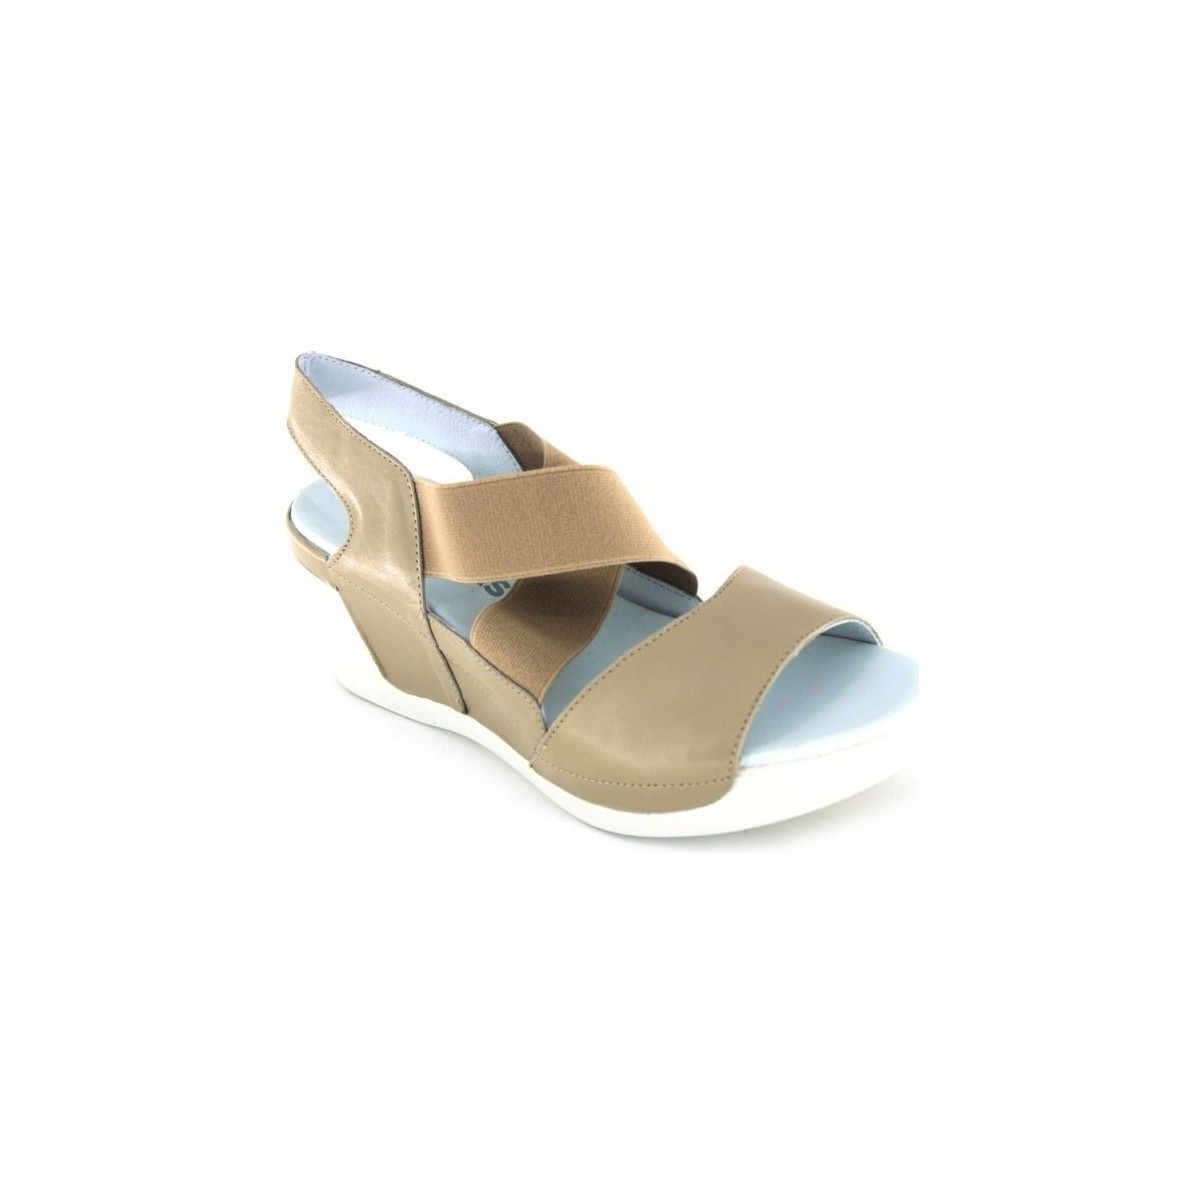 Nordikas Sandales 9672 Nordikas soldes Chaussures Rieker blanches Casual femme j9f4vy3nj8